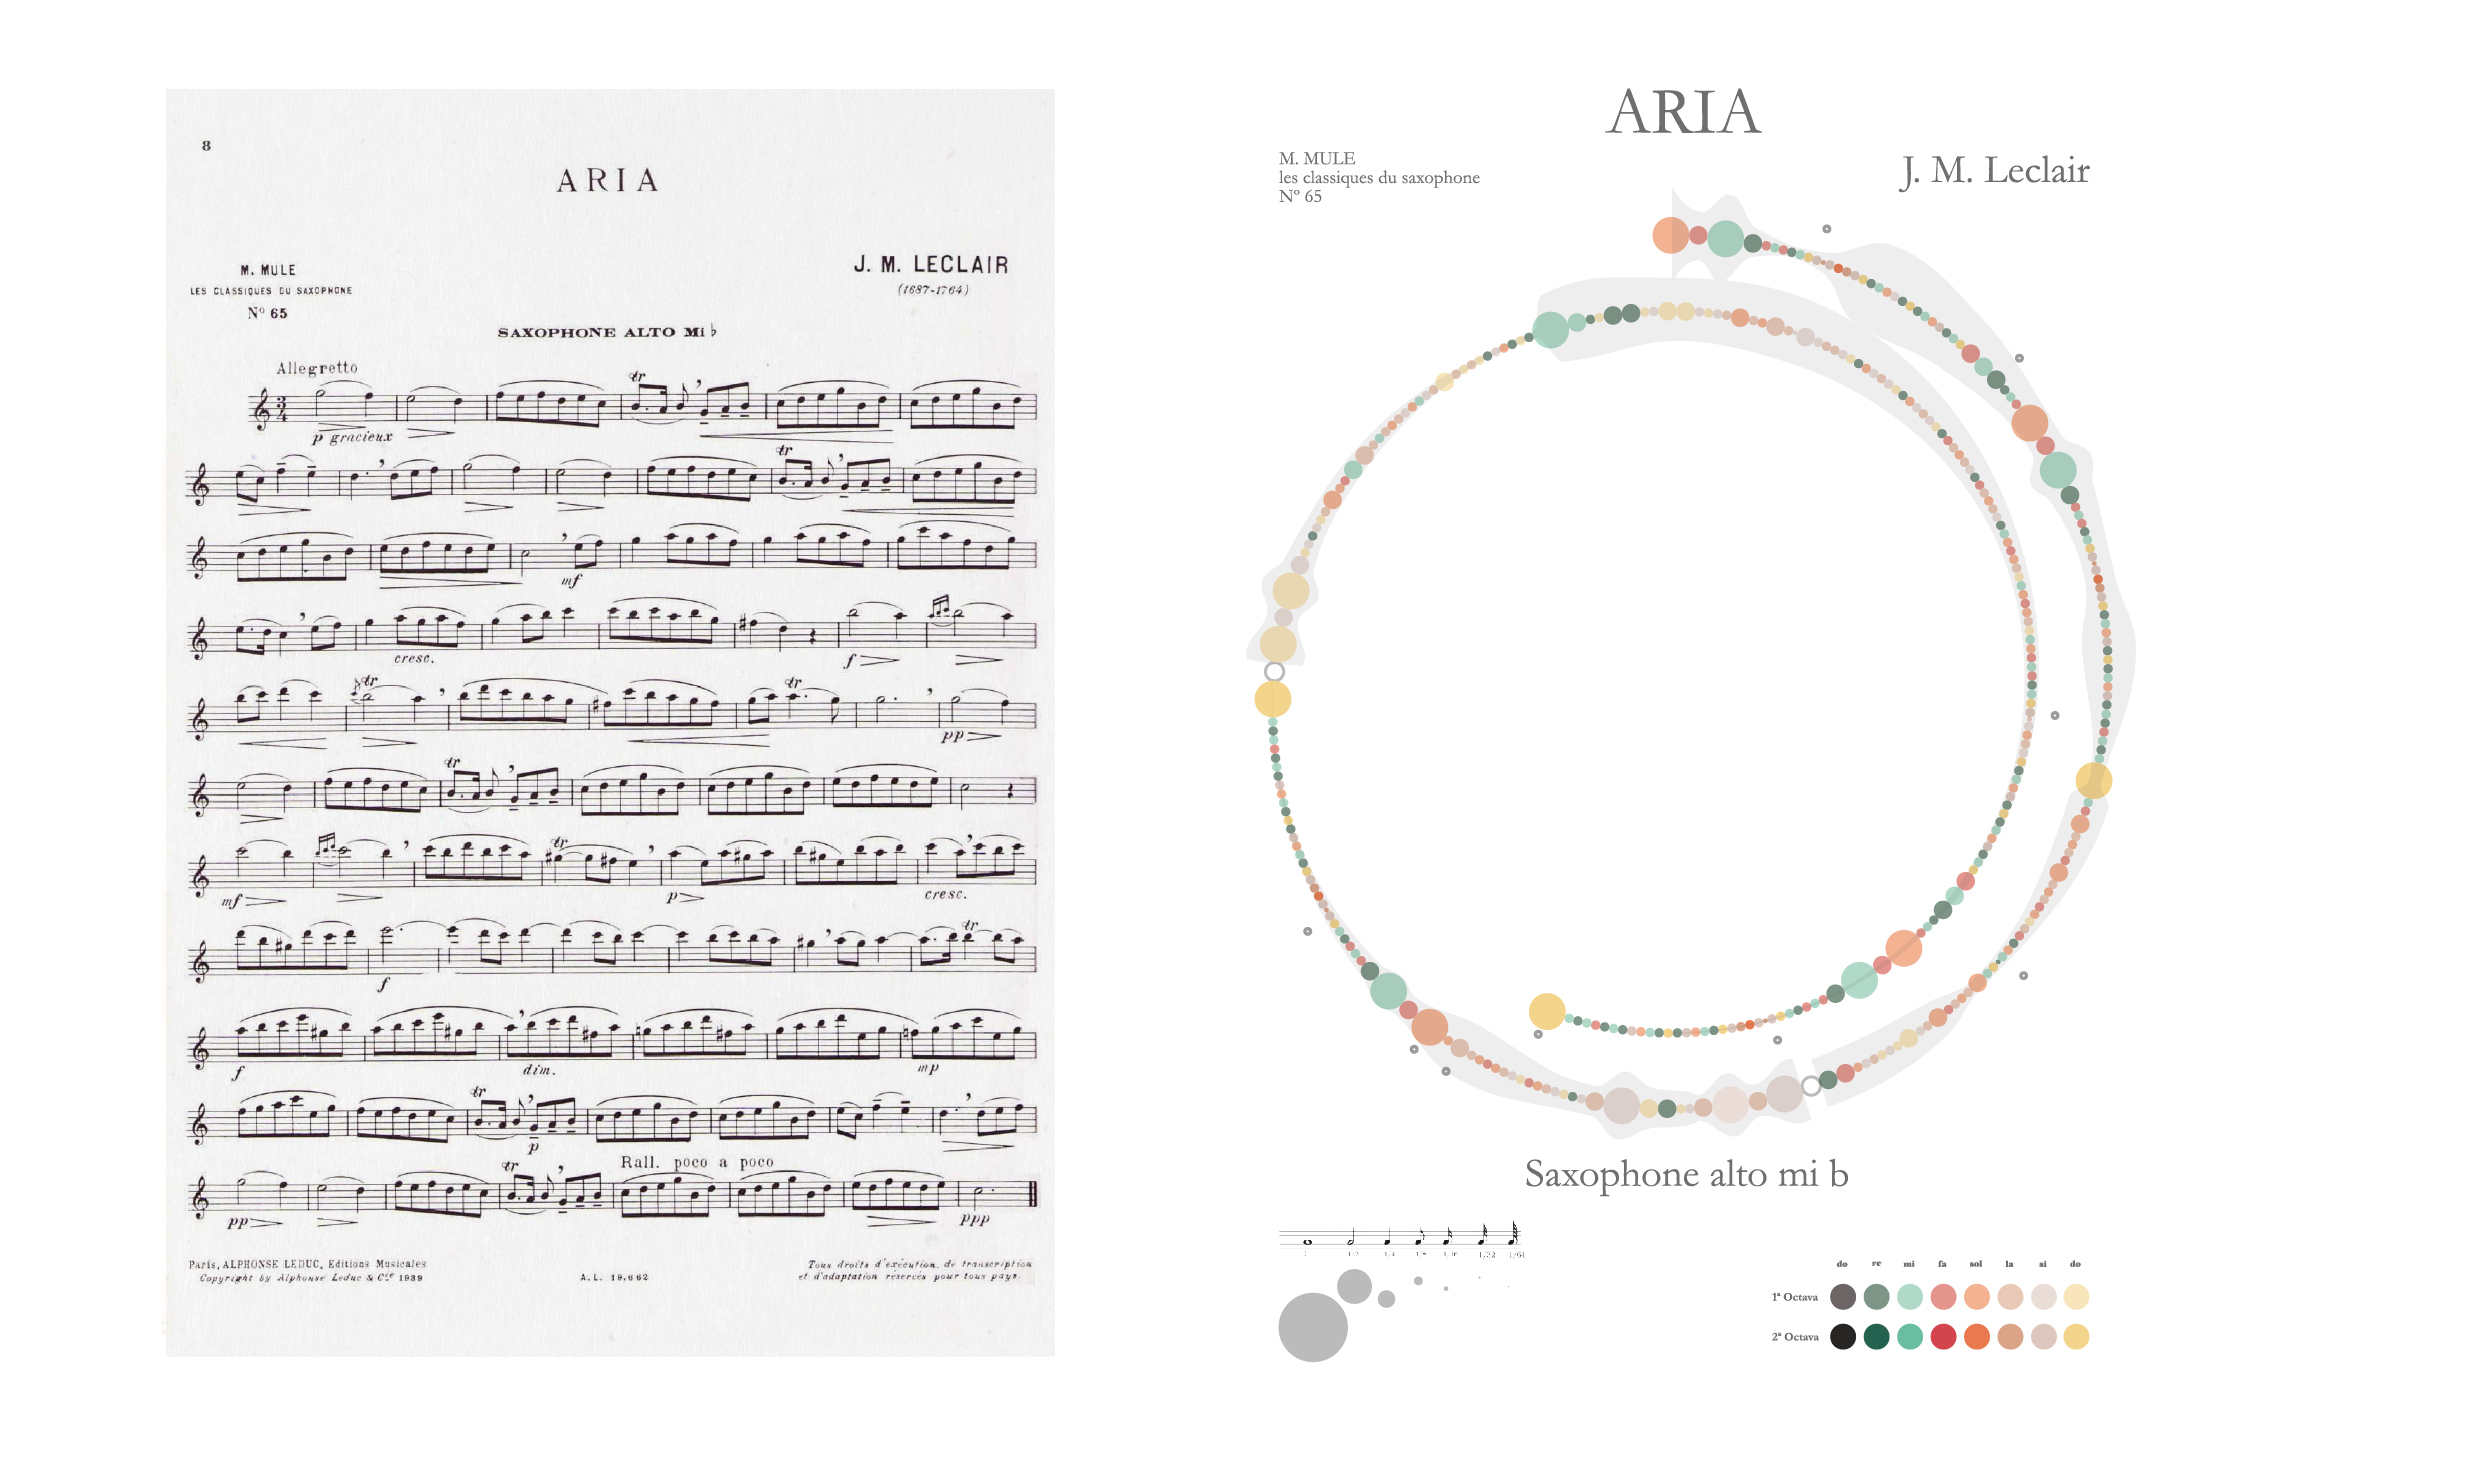 Data visualizations about music, first case study, spiral graph